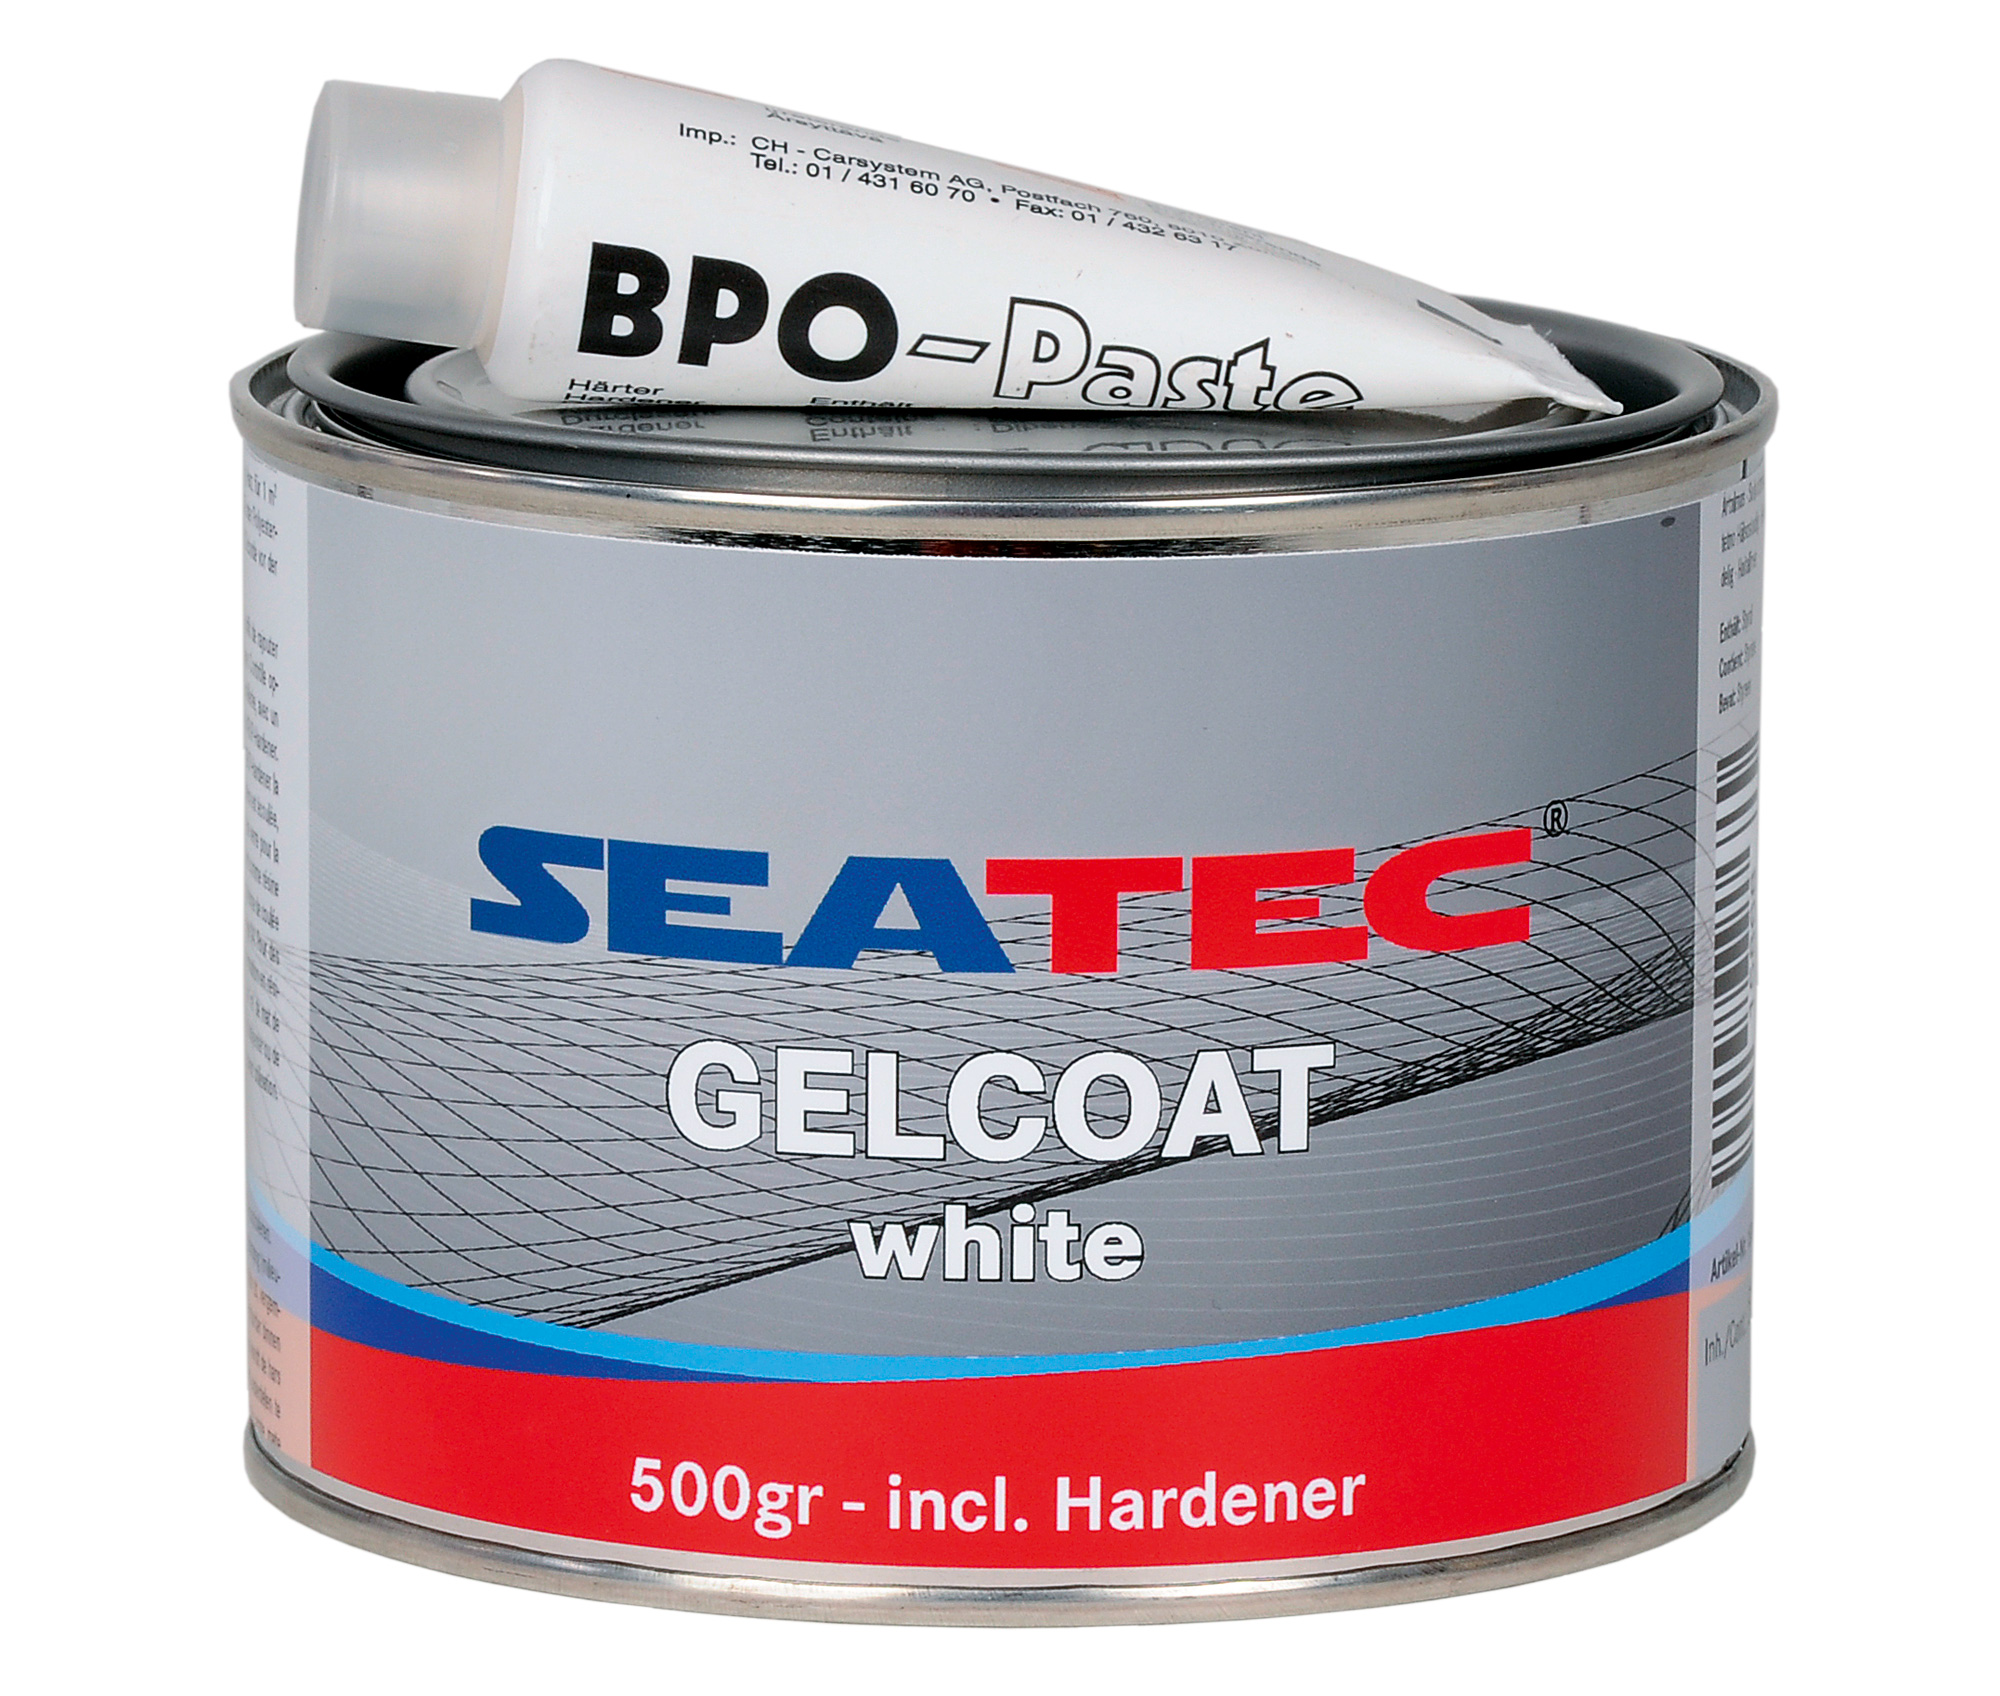 SEATEC - GELCOAT